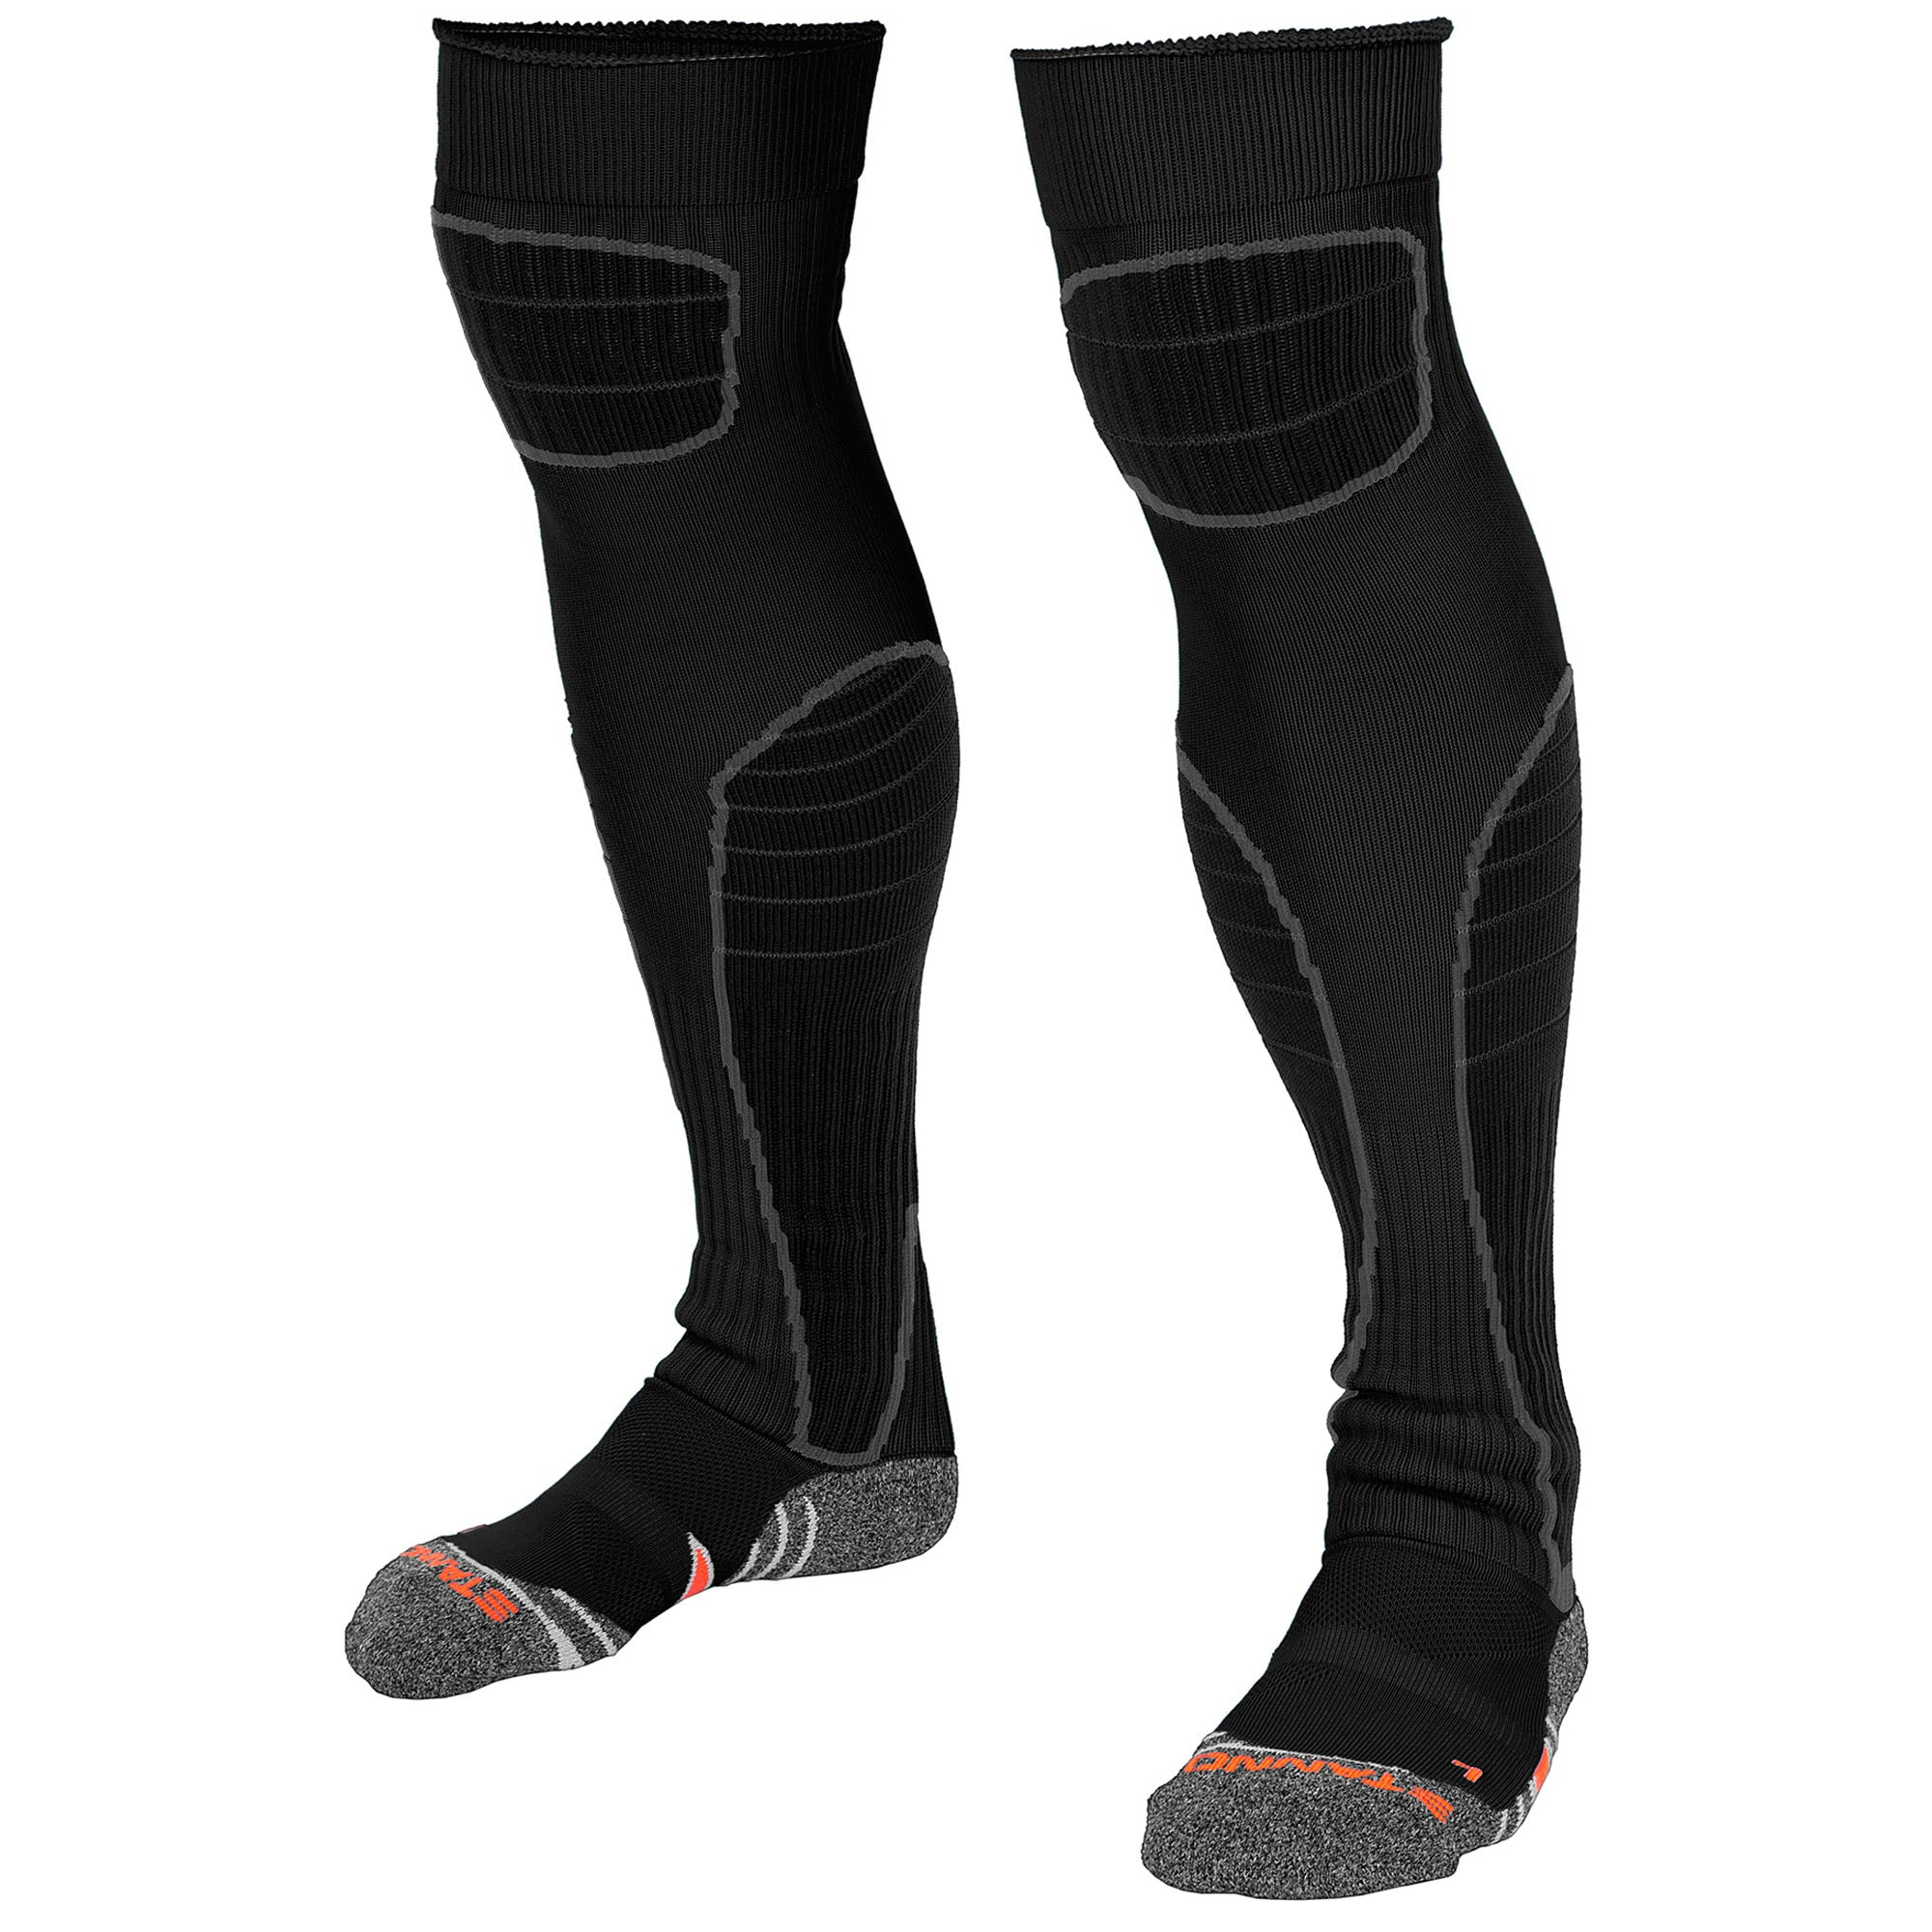 Stanno Black high Impact Goalkeeper sock